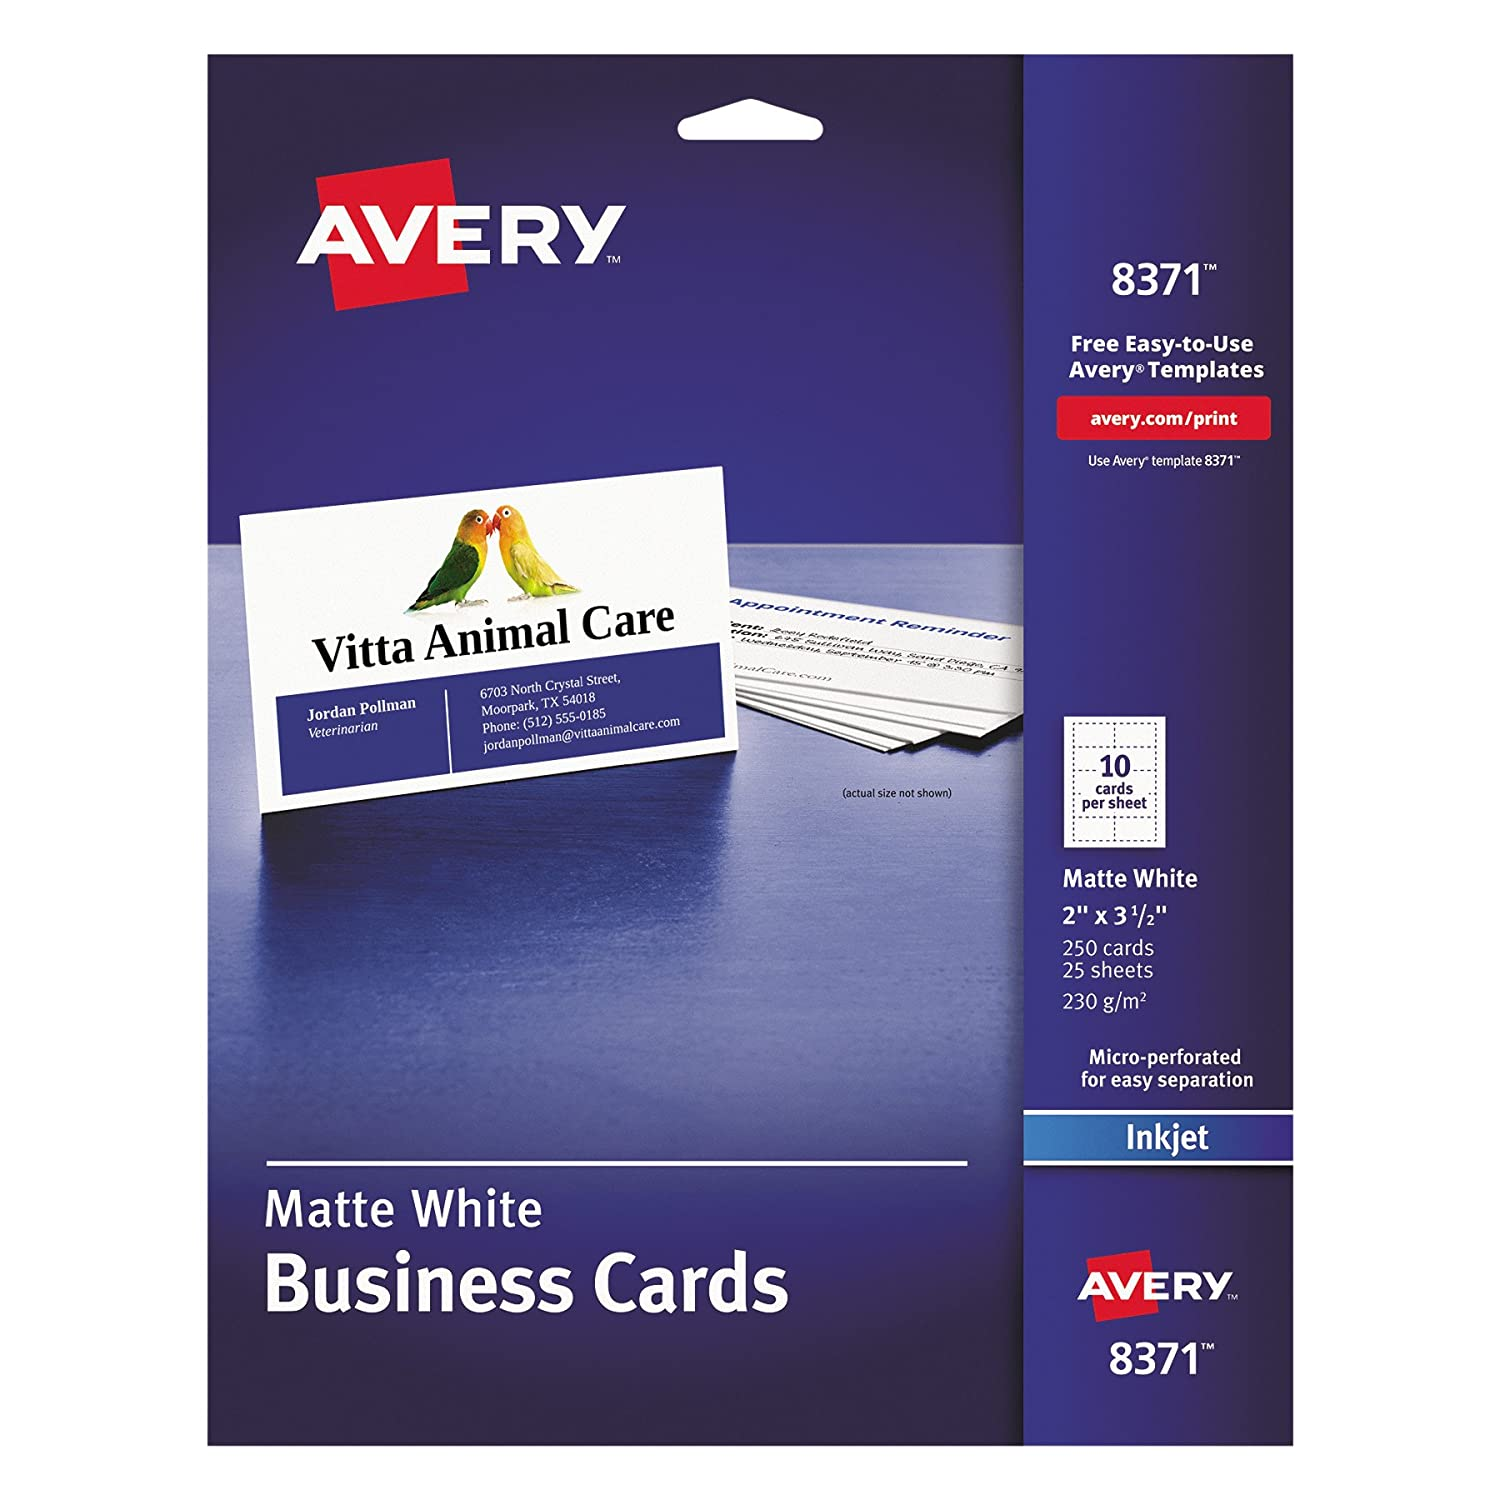 Amazon avery 8371 printable microperf business cards inkjet amazon avery 8371 printable microperf business cards inkjet 2 x 3 12 white matte pack of 250 business card stock office products accmission Choice Image